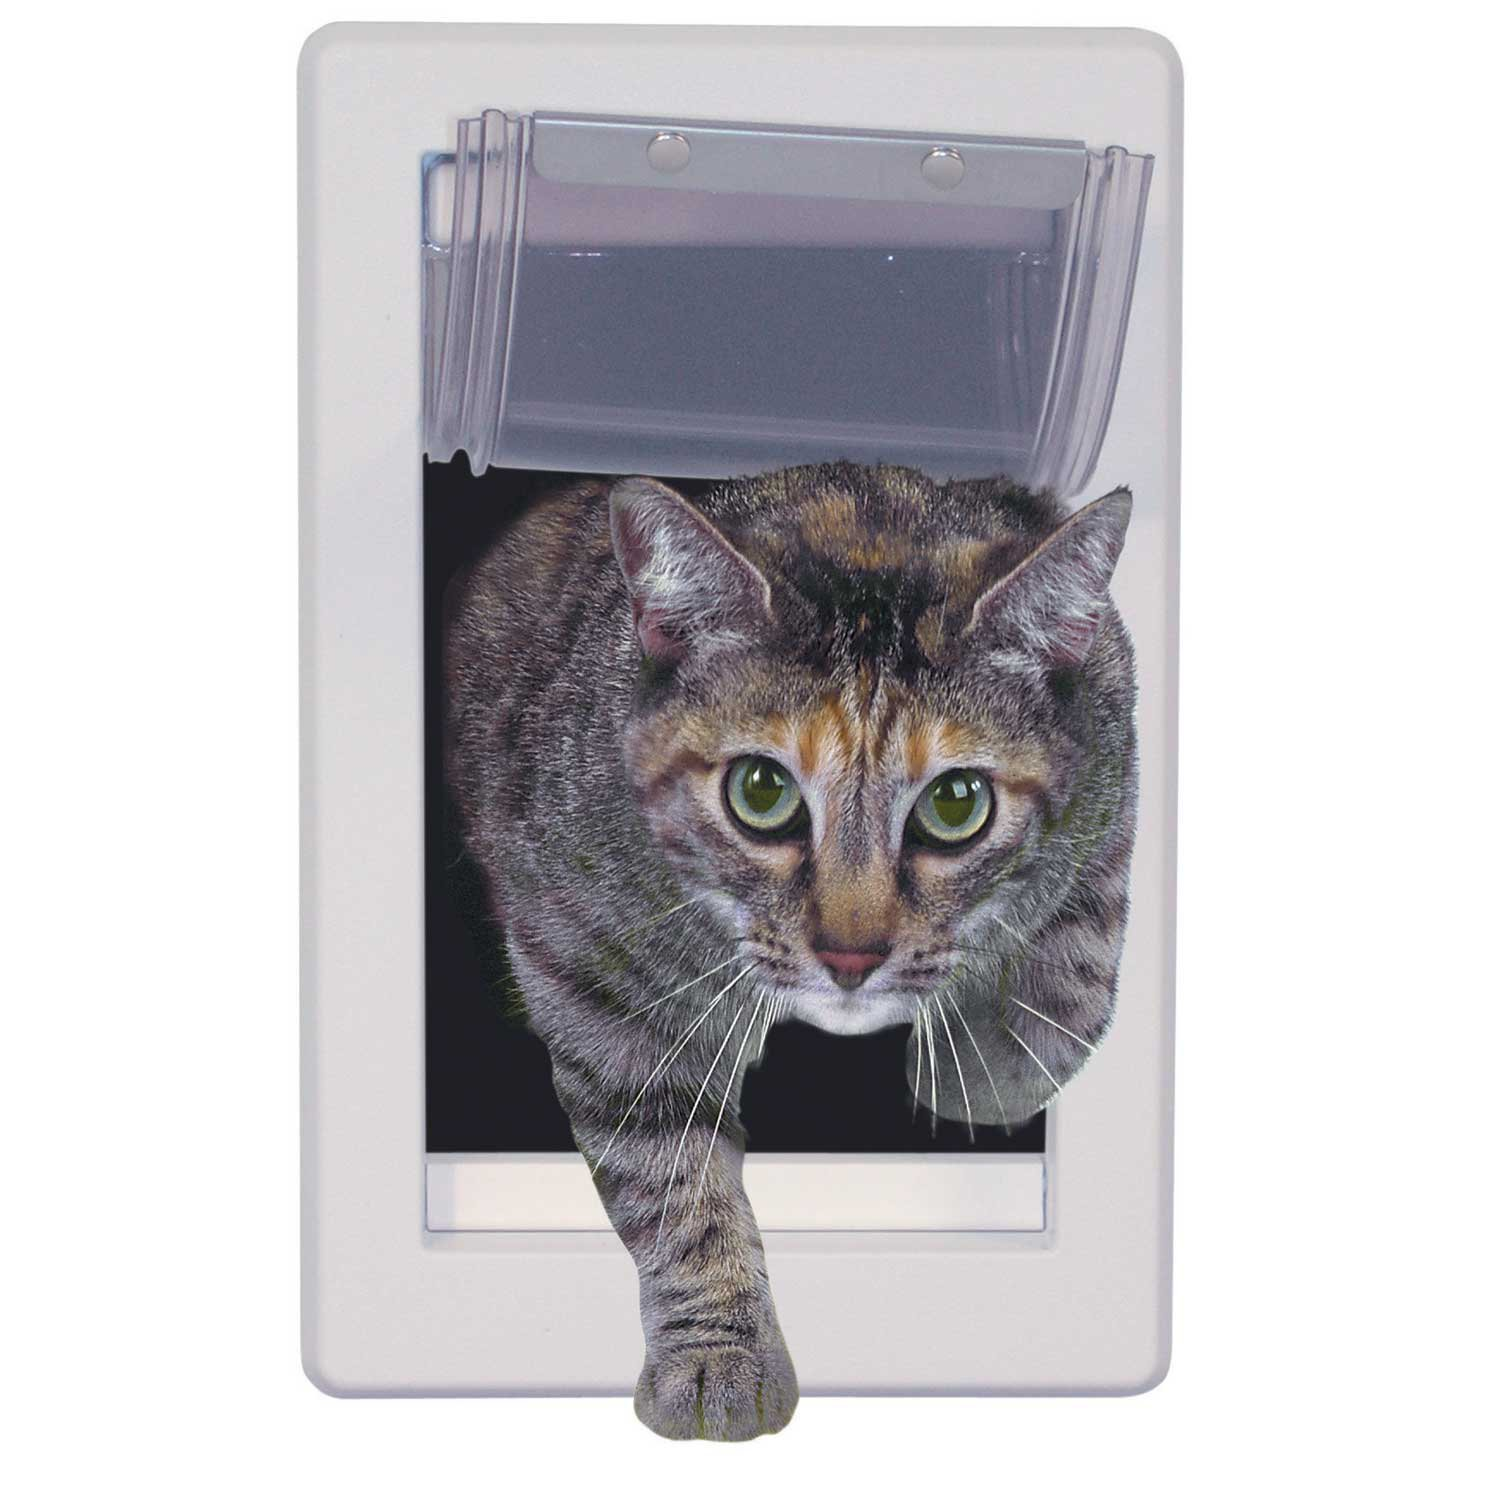 Amazon.com  Perfect Pet Soft Flap Cat Door with Telescoping Frame Small 5  x 7  Flap Size  Pet Supplies  sc 1 st  Amazon.com & Amazon.com : Perfect Pet Soft Flap Cat Door with Telescoping Frame ...